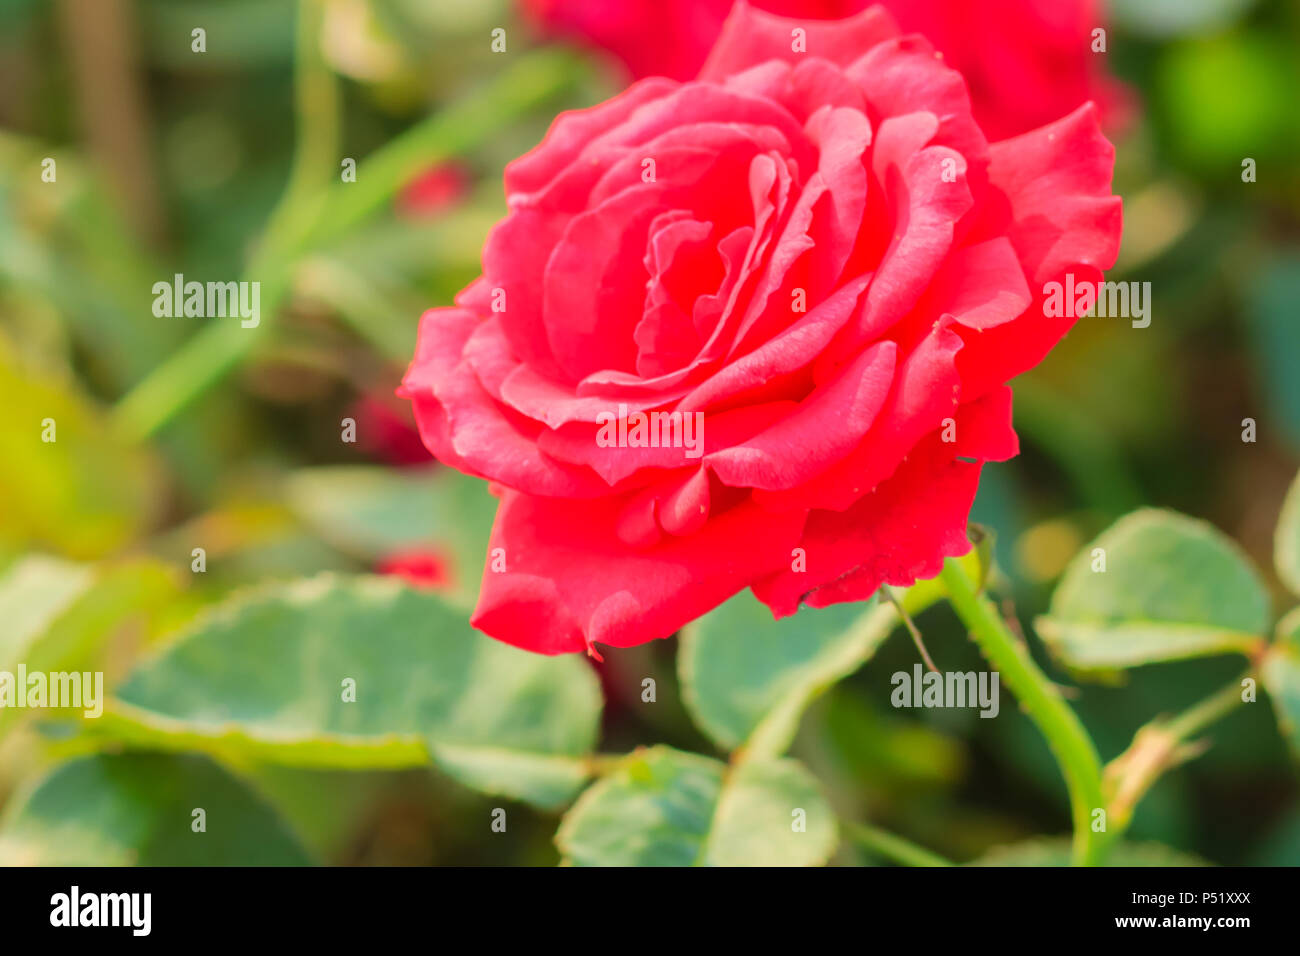 Beautiful Red Rose Flower Blooming On A Bush In Rose Garden Stock